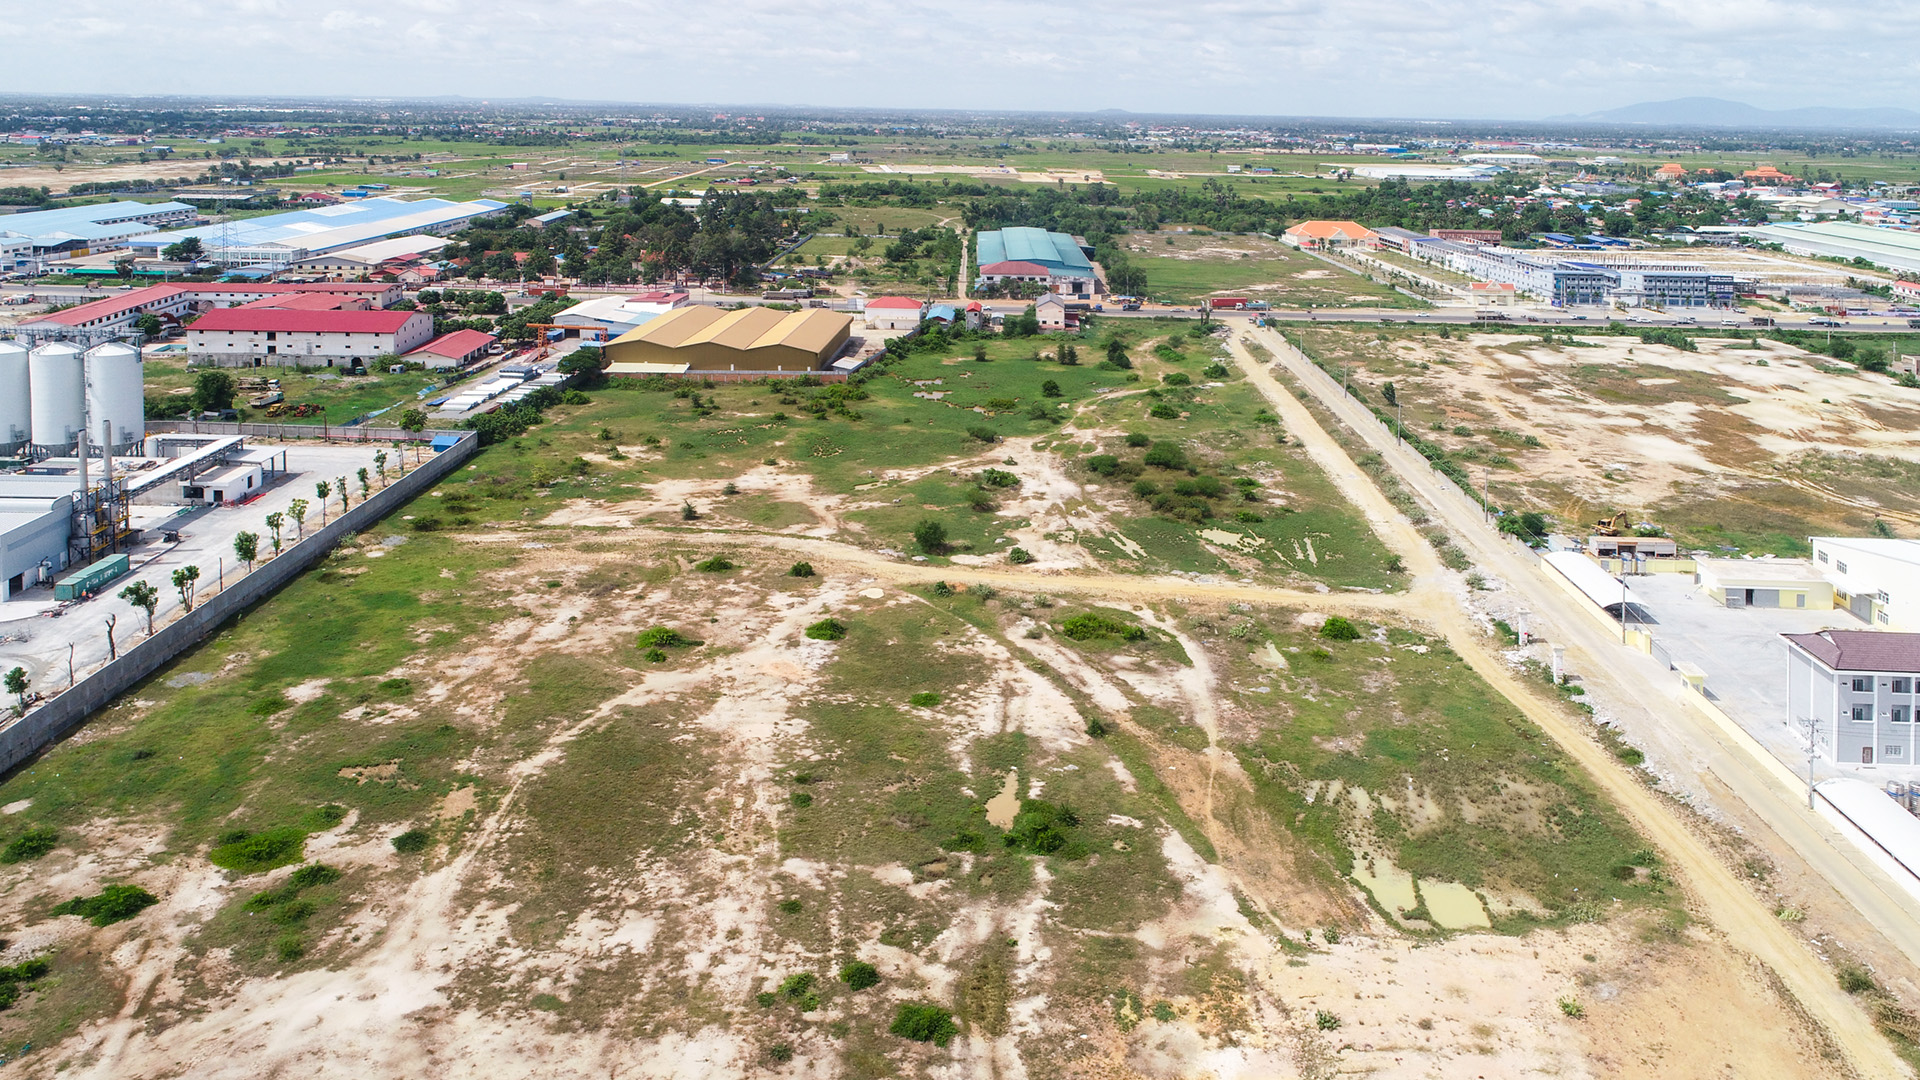 3.4 Hectares Land for Sale – Along National Road No. 4